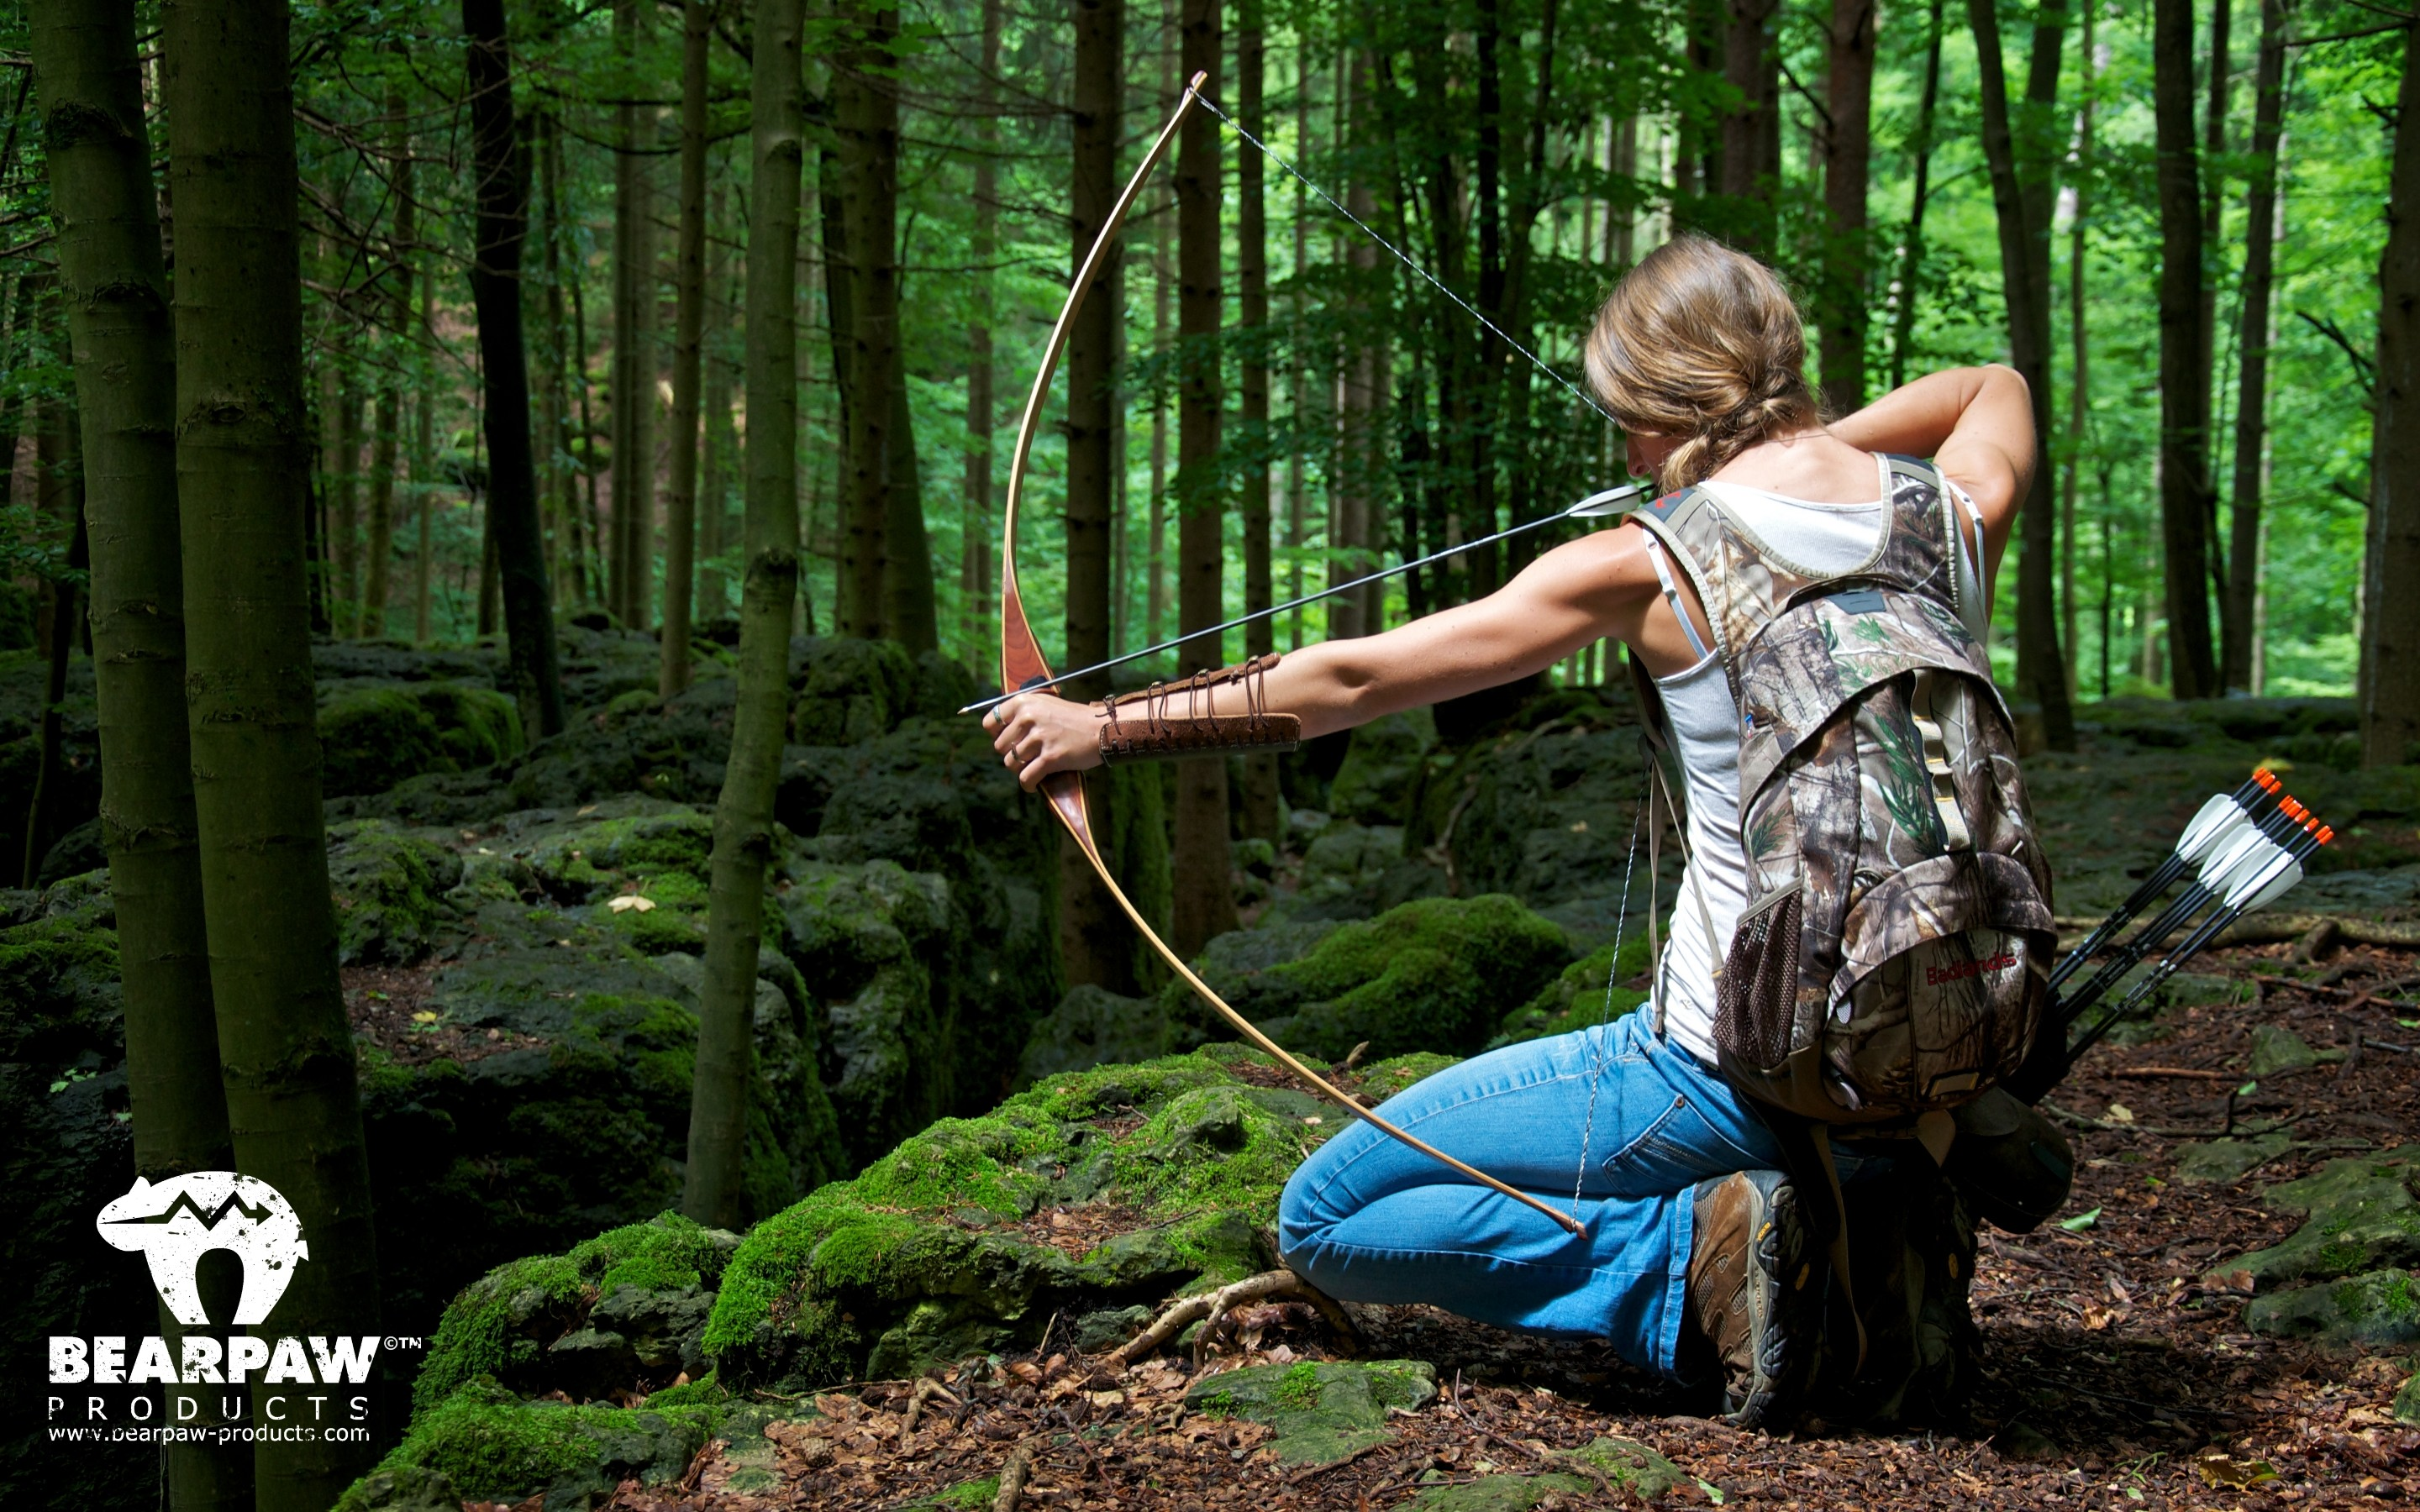 2880x1800 Archery Girl Outdoor Bearpaw Products Wallpaper .